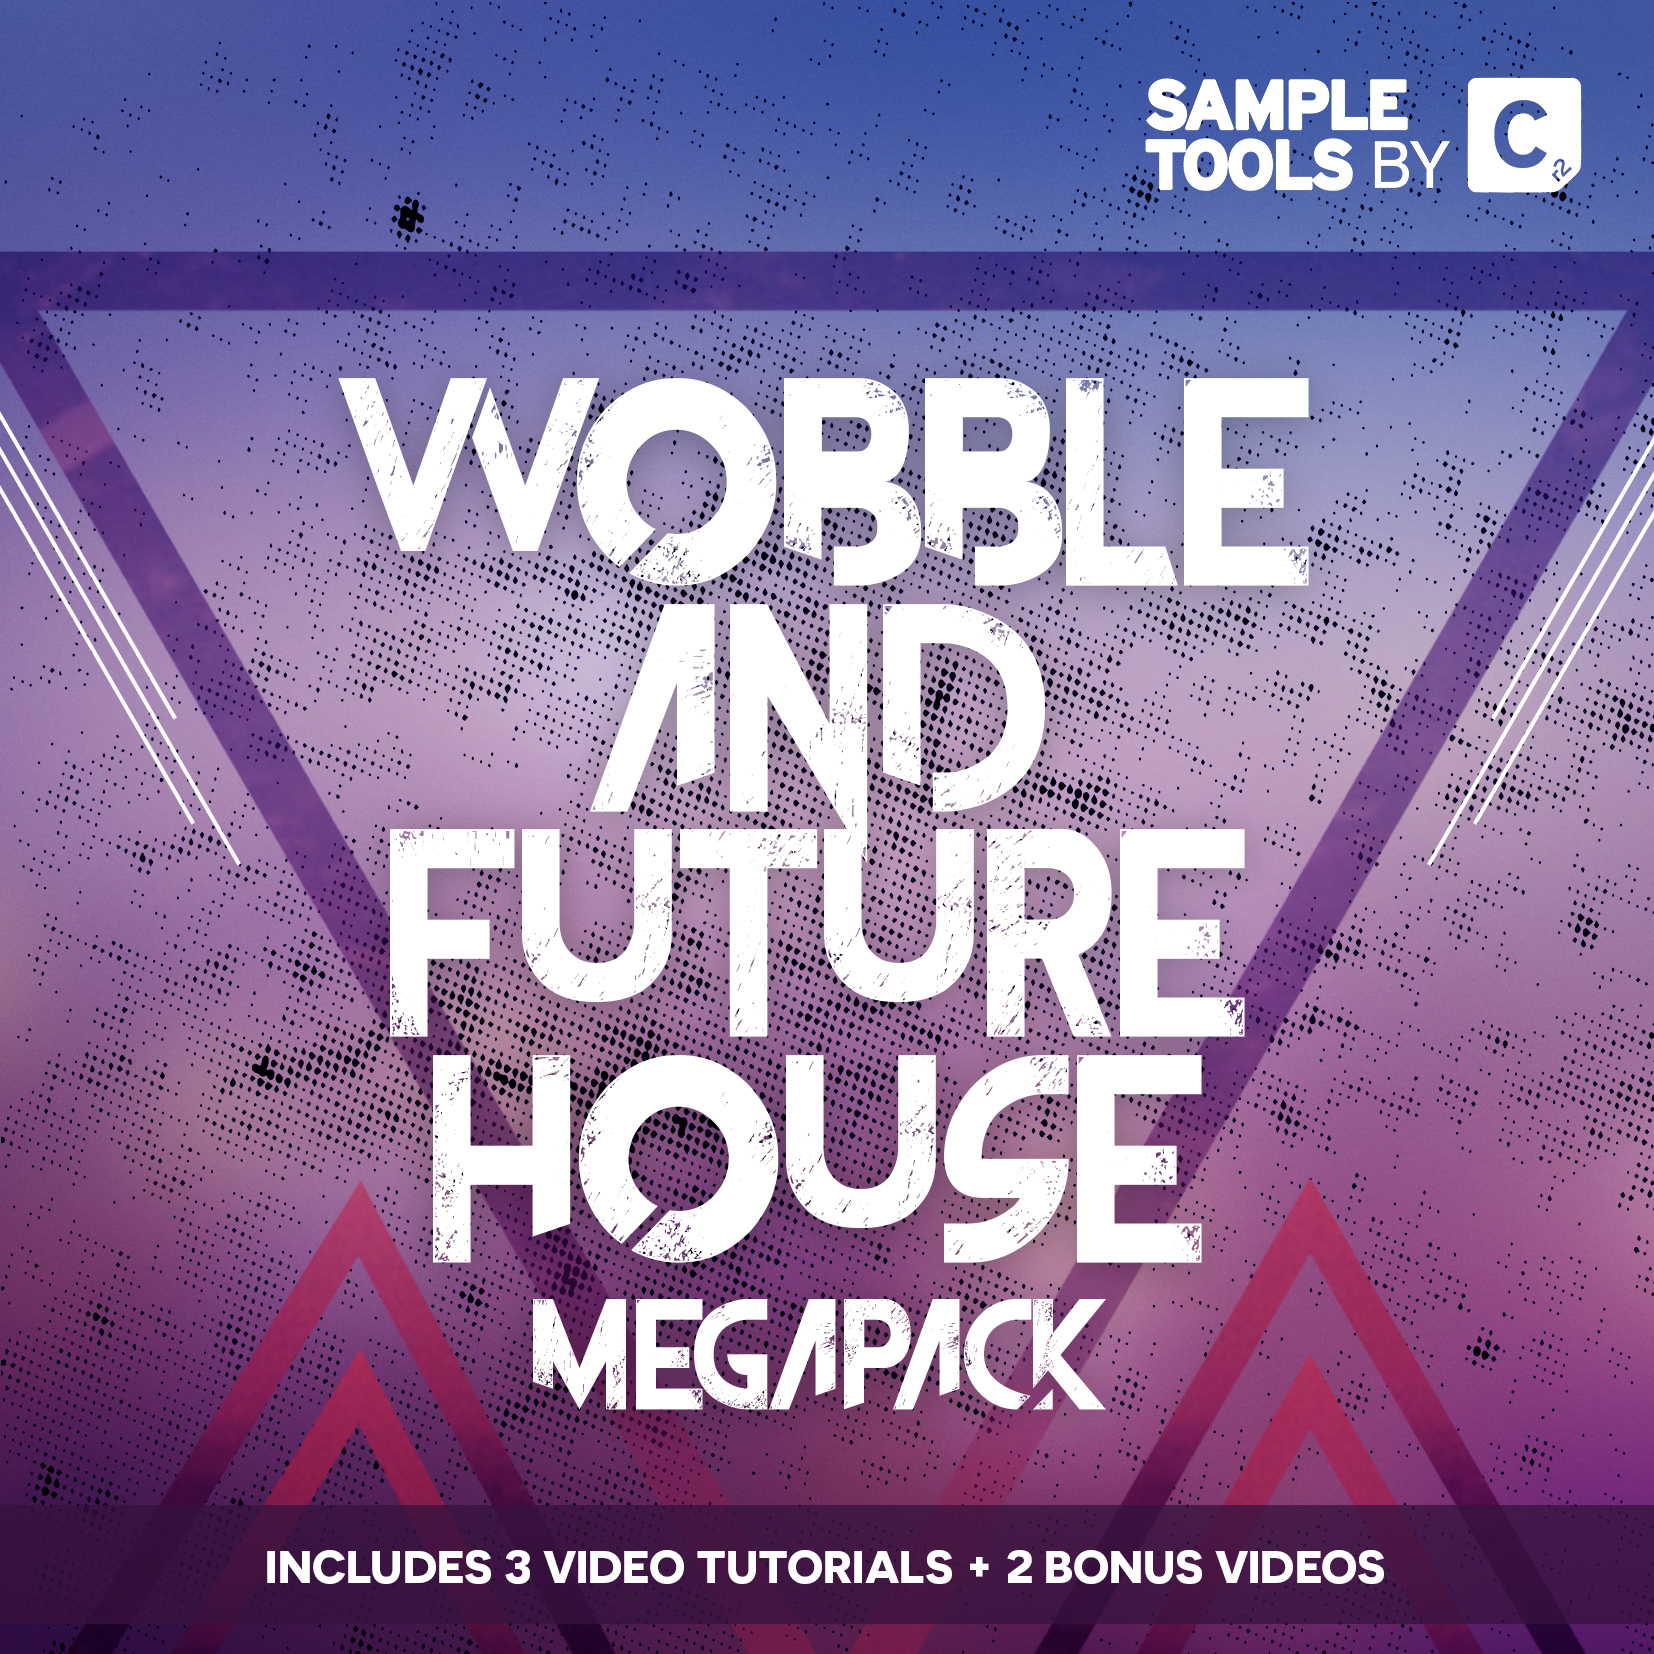 Wobble & Future House Megapack